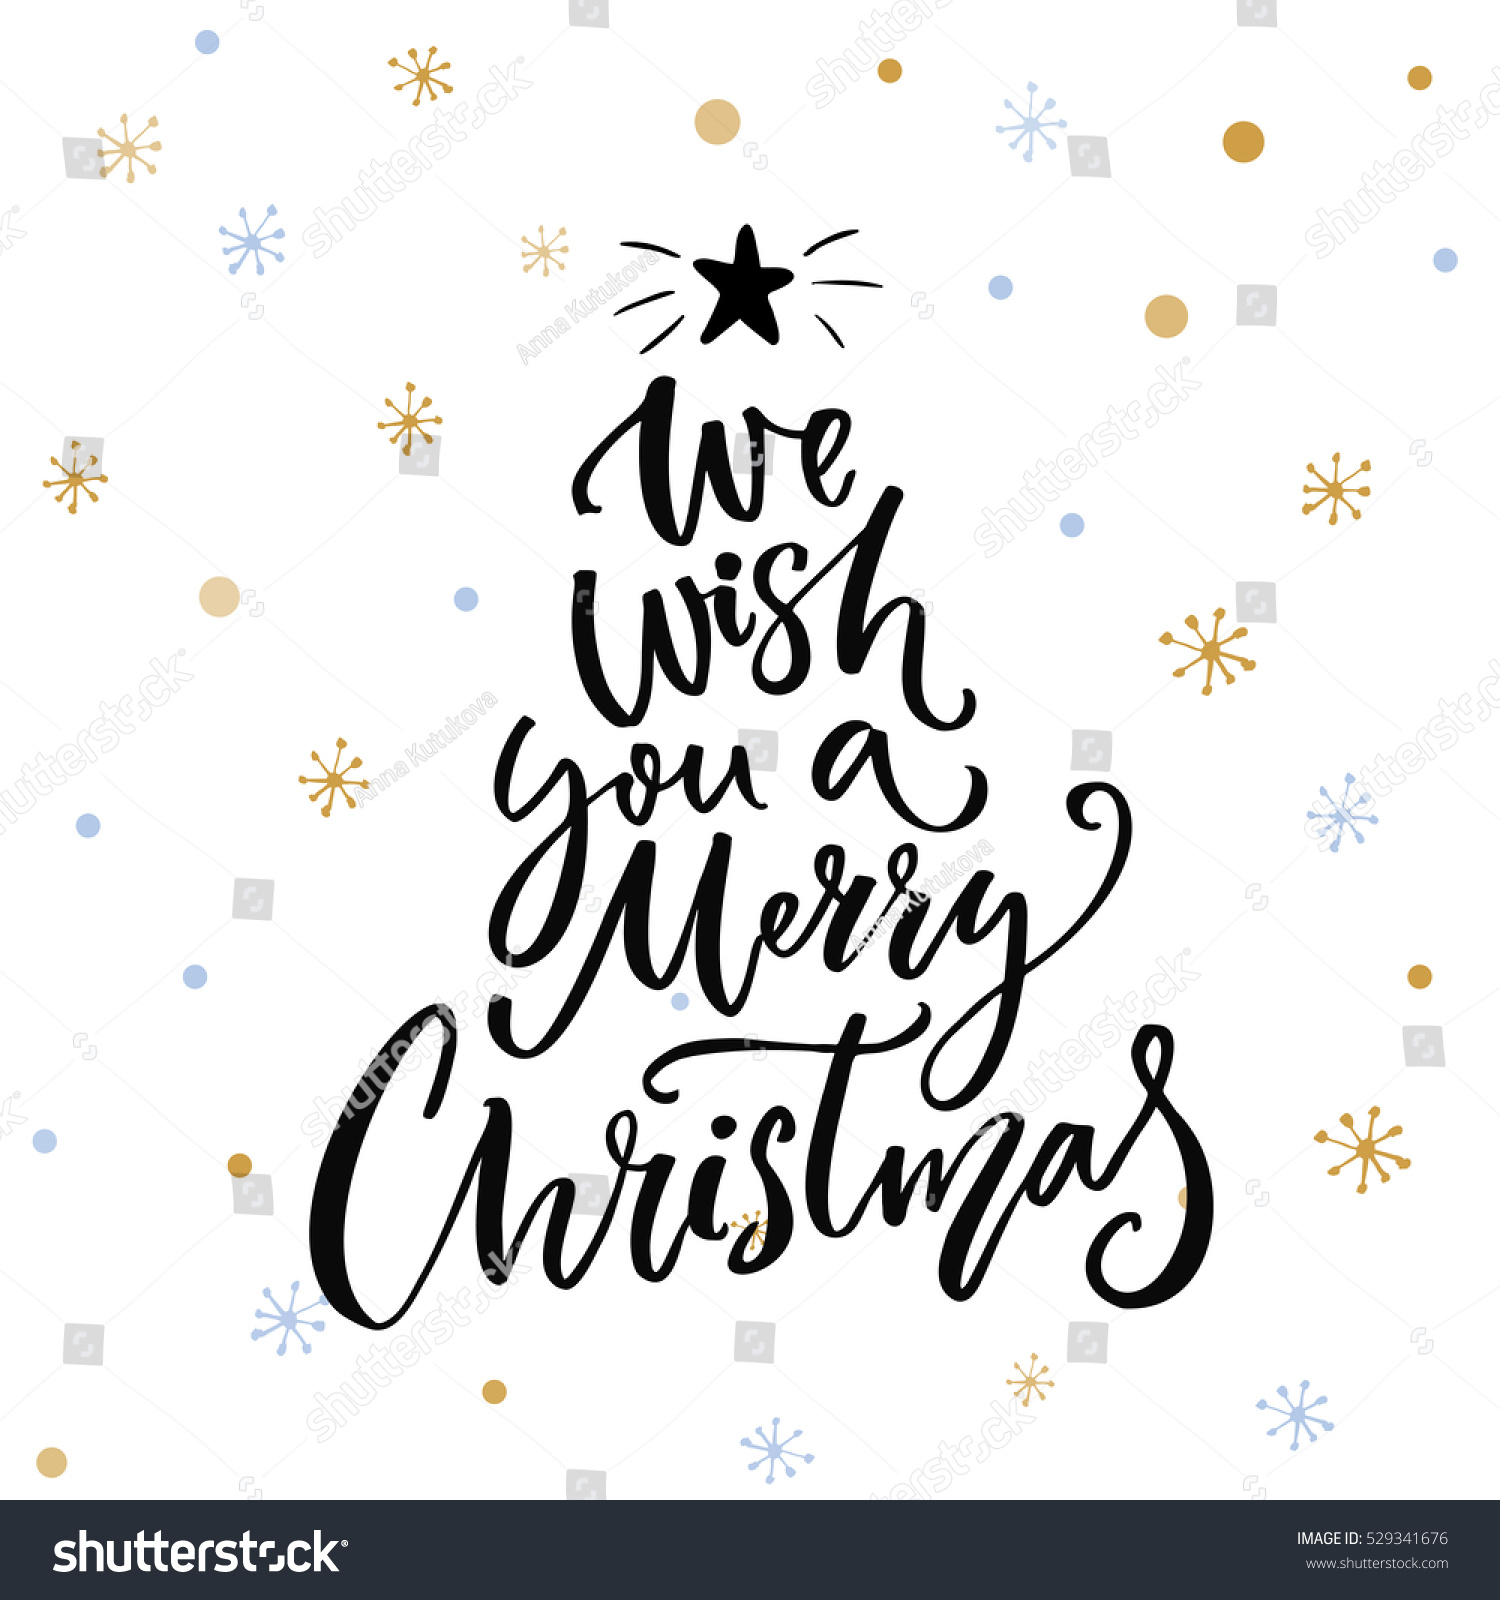 We Wish You Merry Christmas Ornate Stock Vector (Royalty Free ...